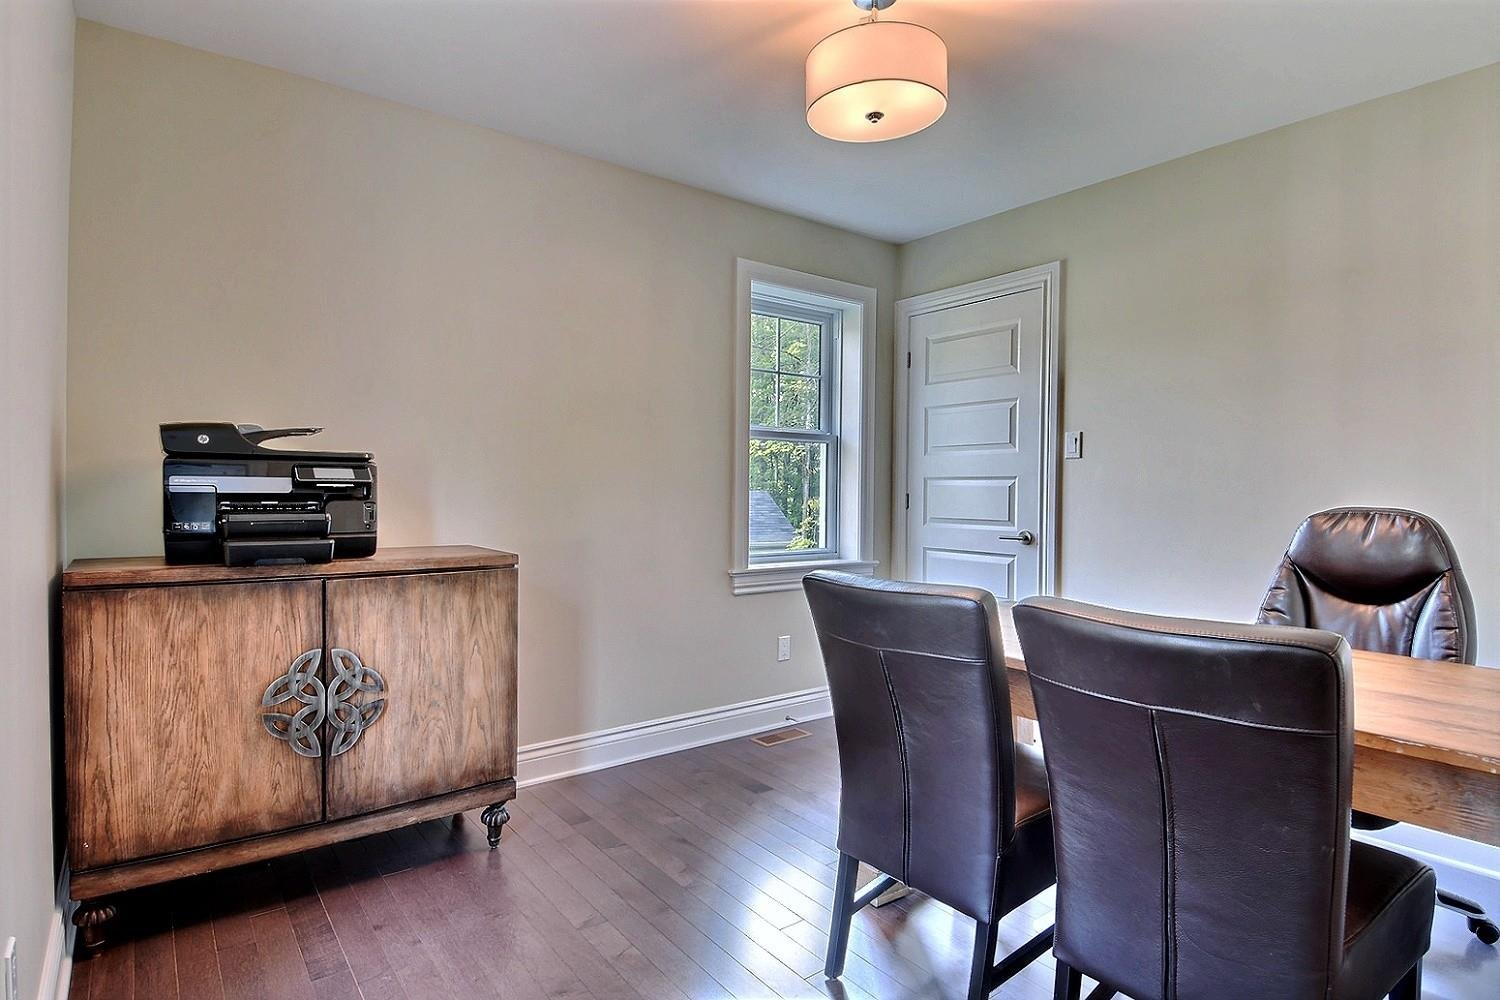 Two Or More Storey For Sale Hudson Buy Two Or More Storey Hudson